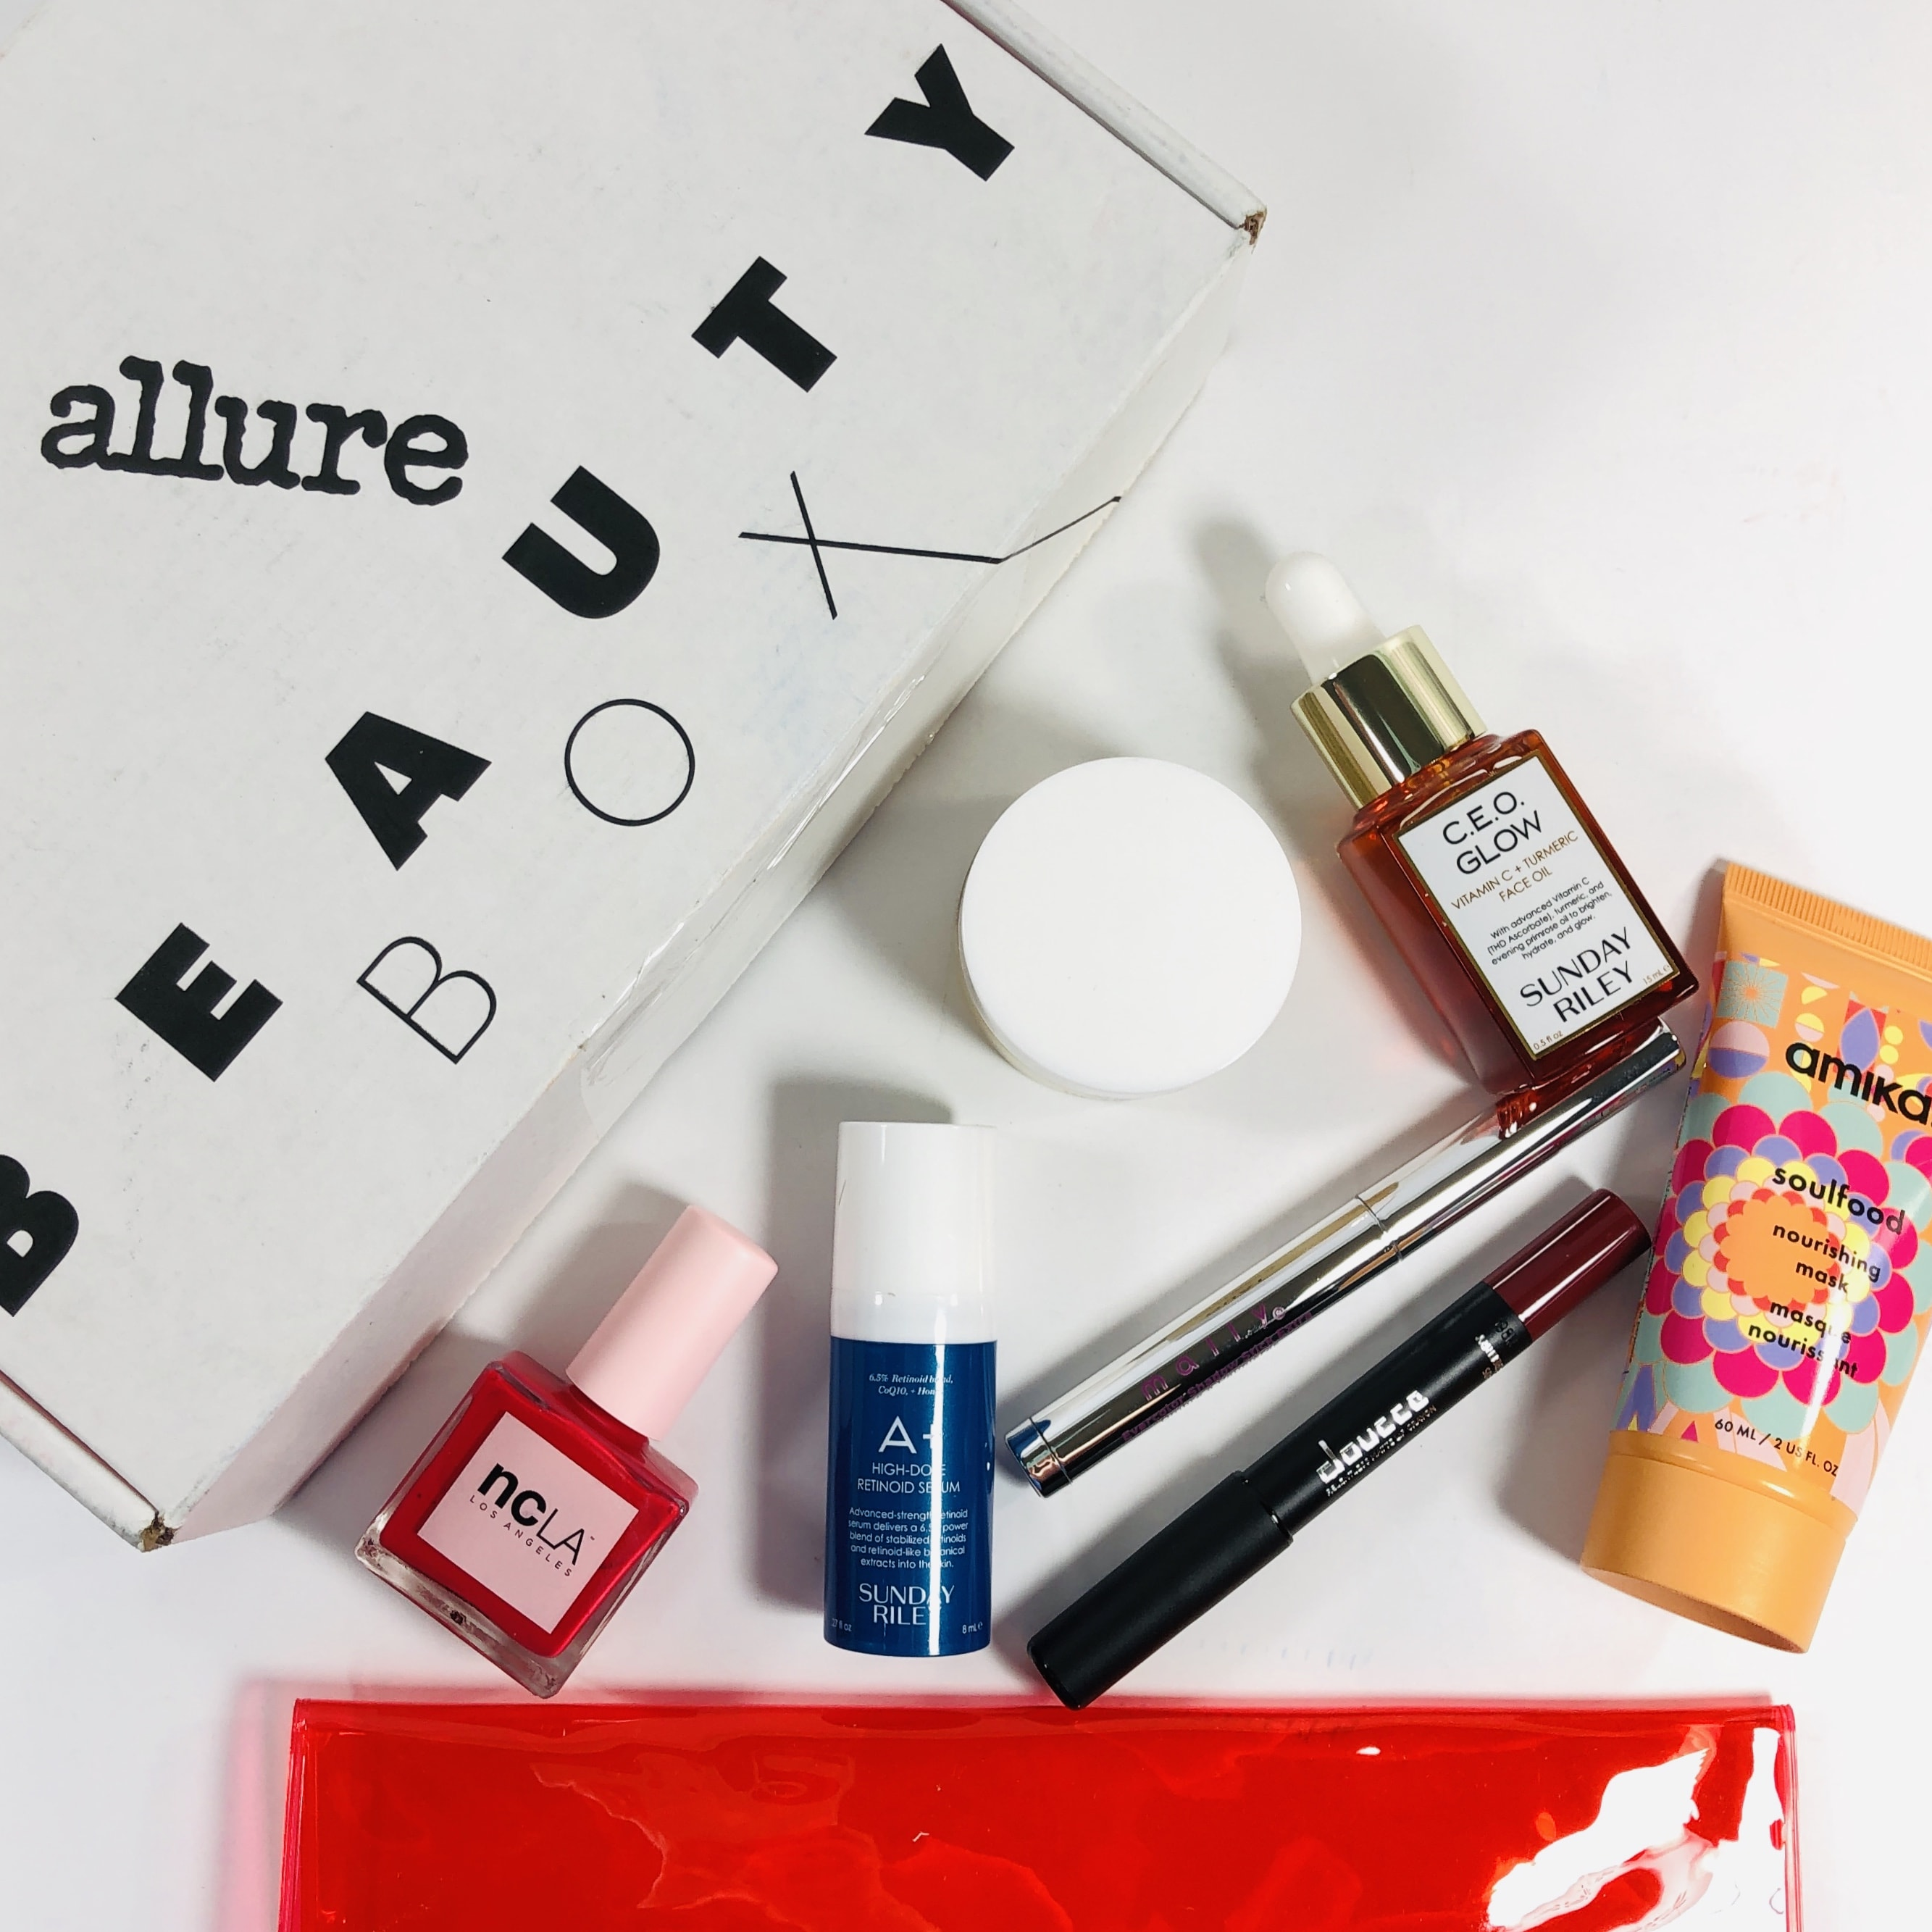 Allure Beauty Box January 2019 Subscription Box Review & Coupon